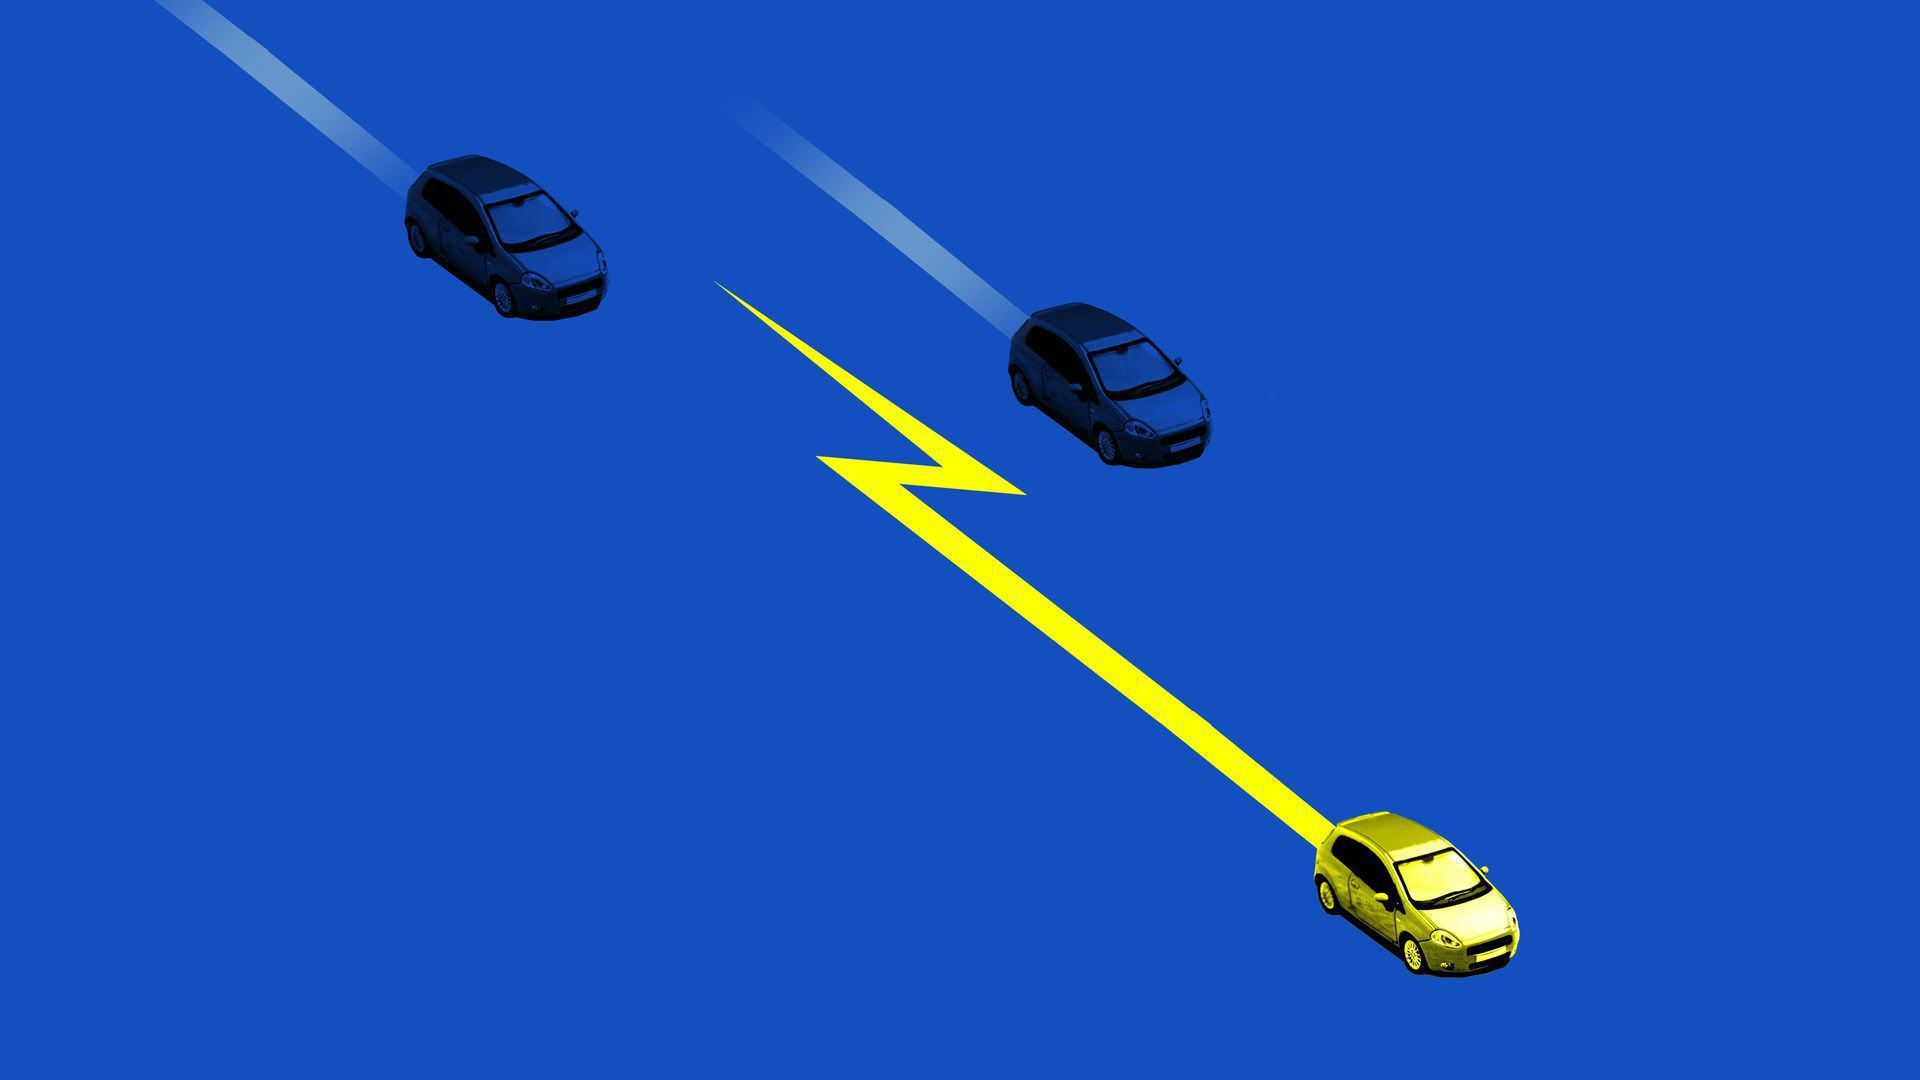 Illustrated cars with lightening bolts